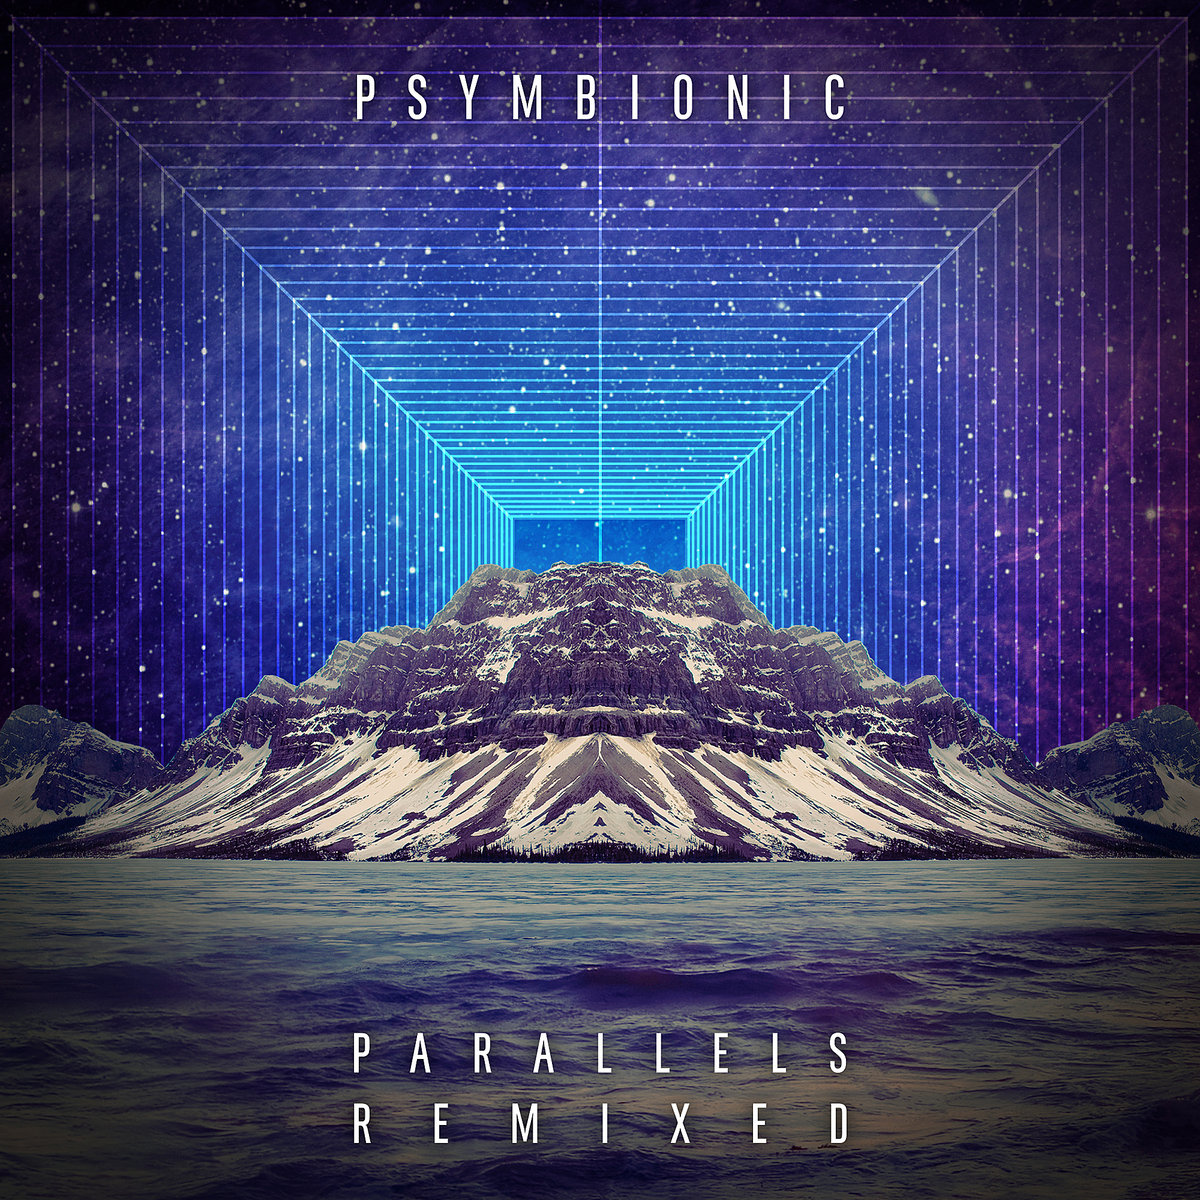 Psymbionic - Slither (Blood Of The Unicorn Remix) @ 'Parallels Remixed' album (Austin)